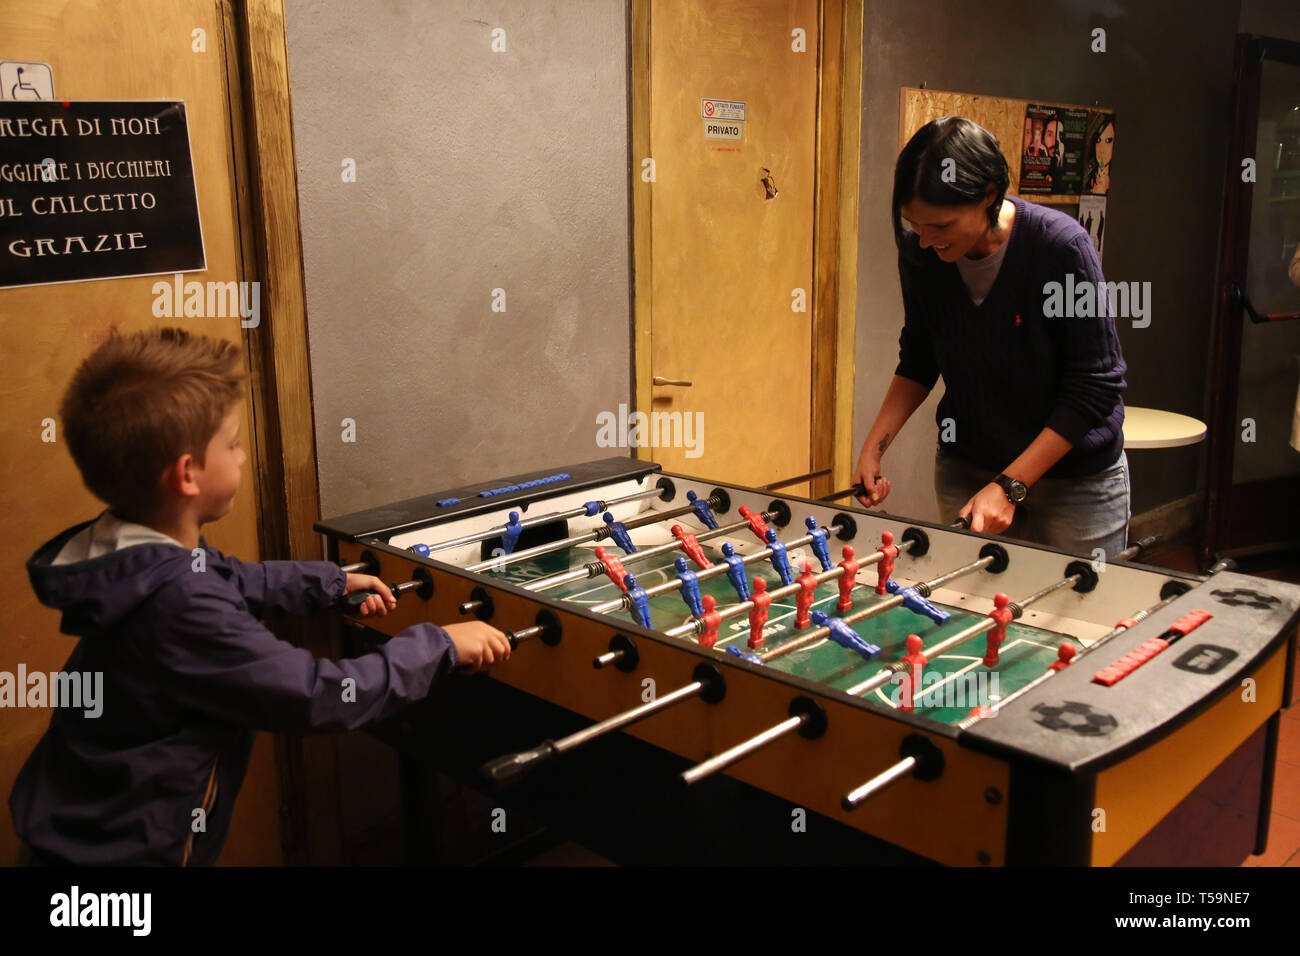 one adult and one boy in the background play table football in a bar - Stock Image